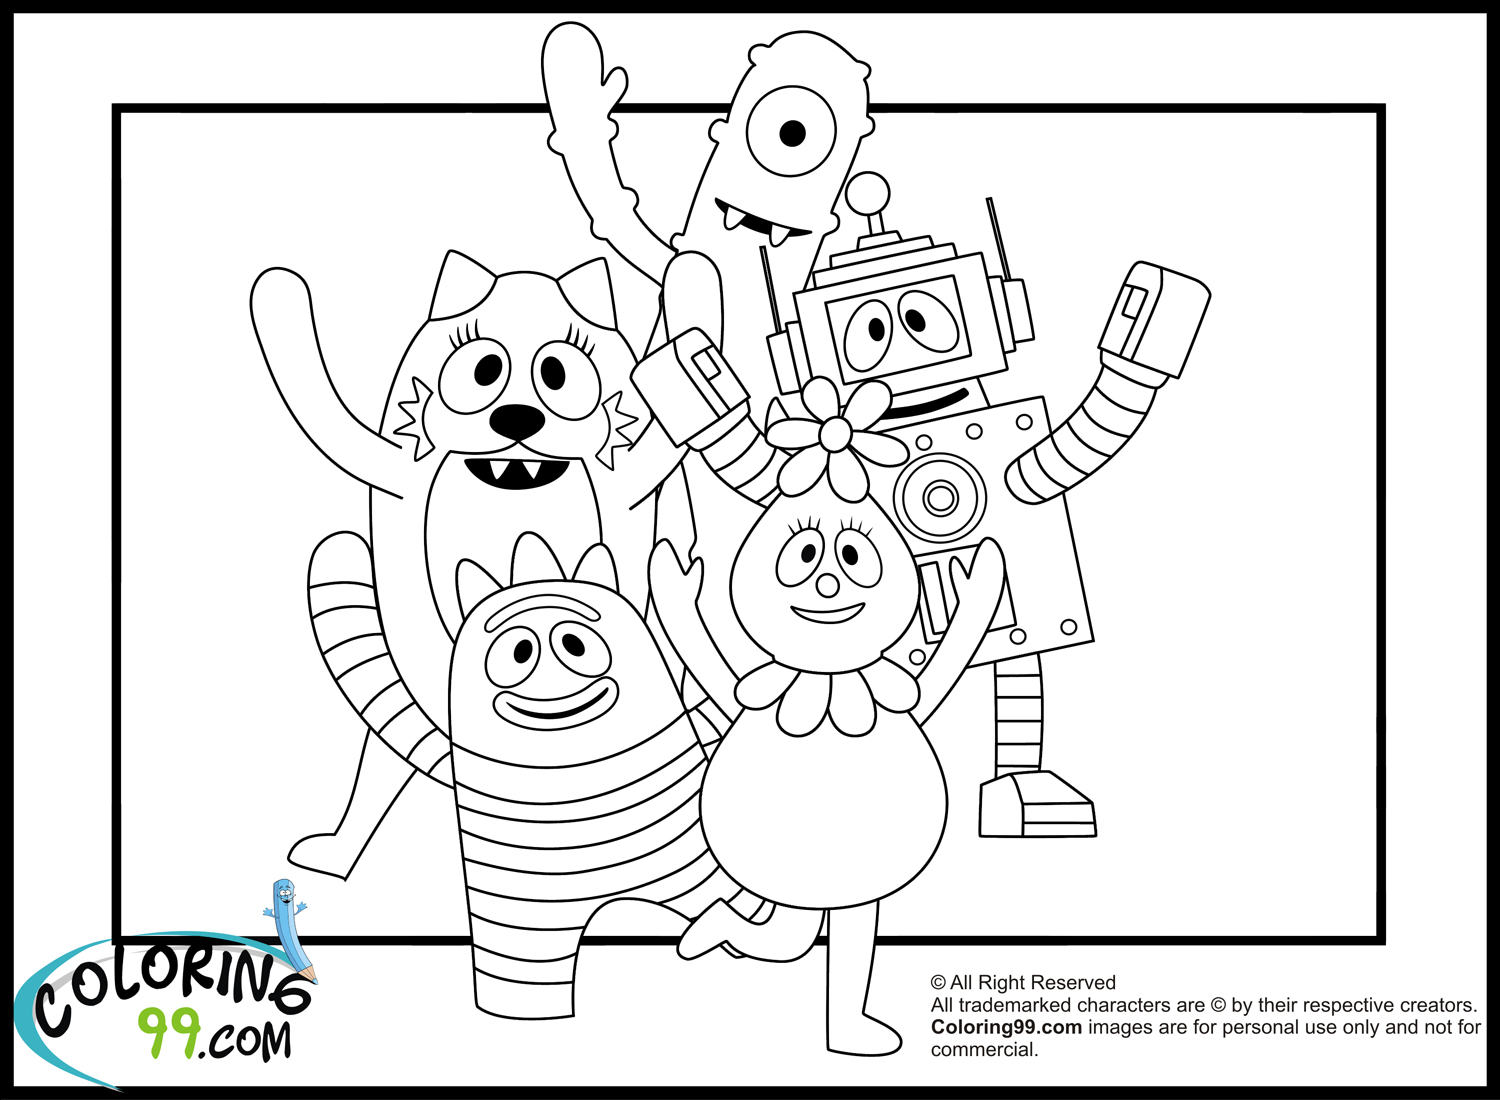 yogabbagabba coloring pages - photo #22